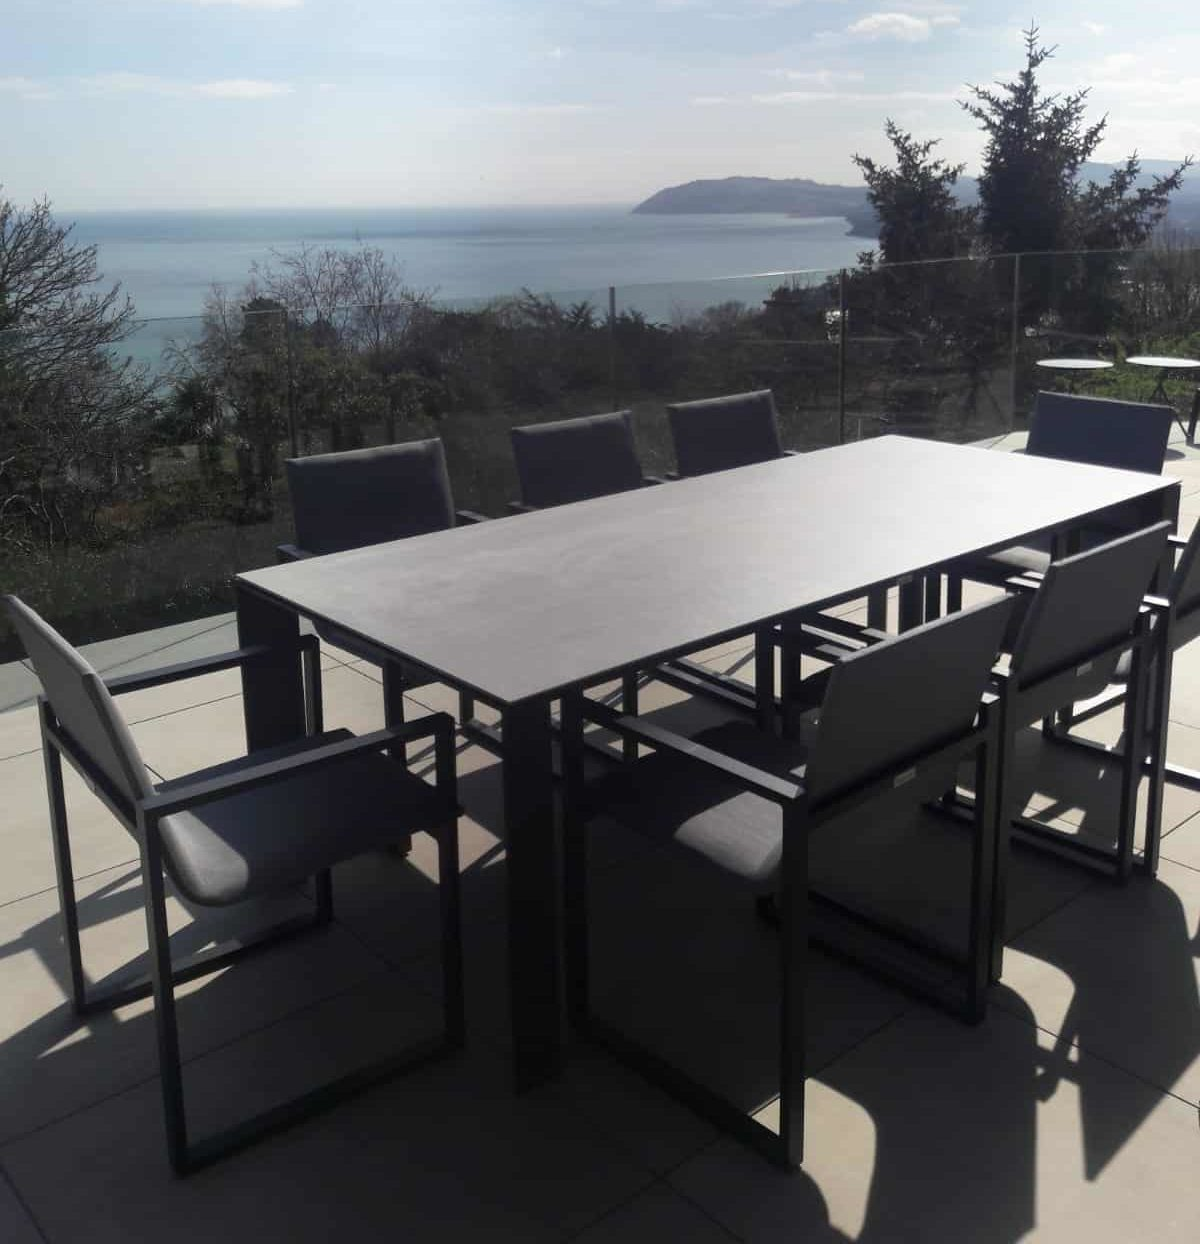 Fermo Dining Table set with 8 Chairs - Charcoal   Garden ...